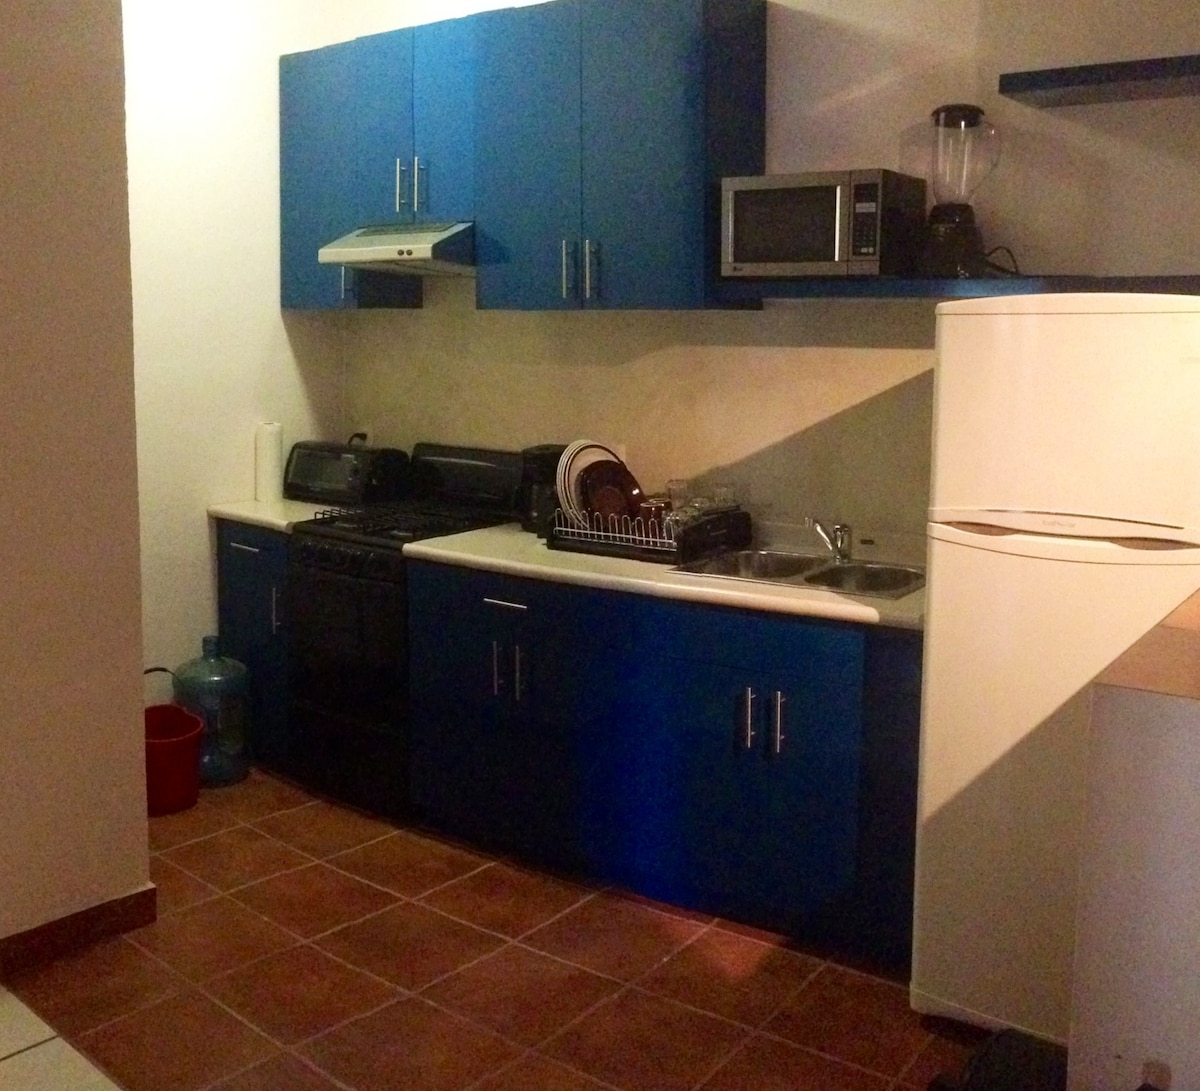 Good size kitchen with stove, microwave, blender, toaster oven, etc.